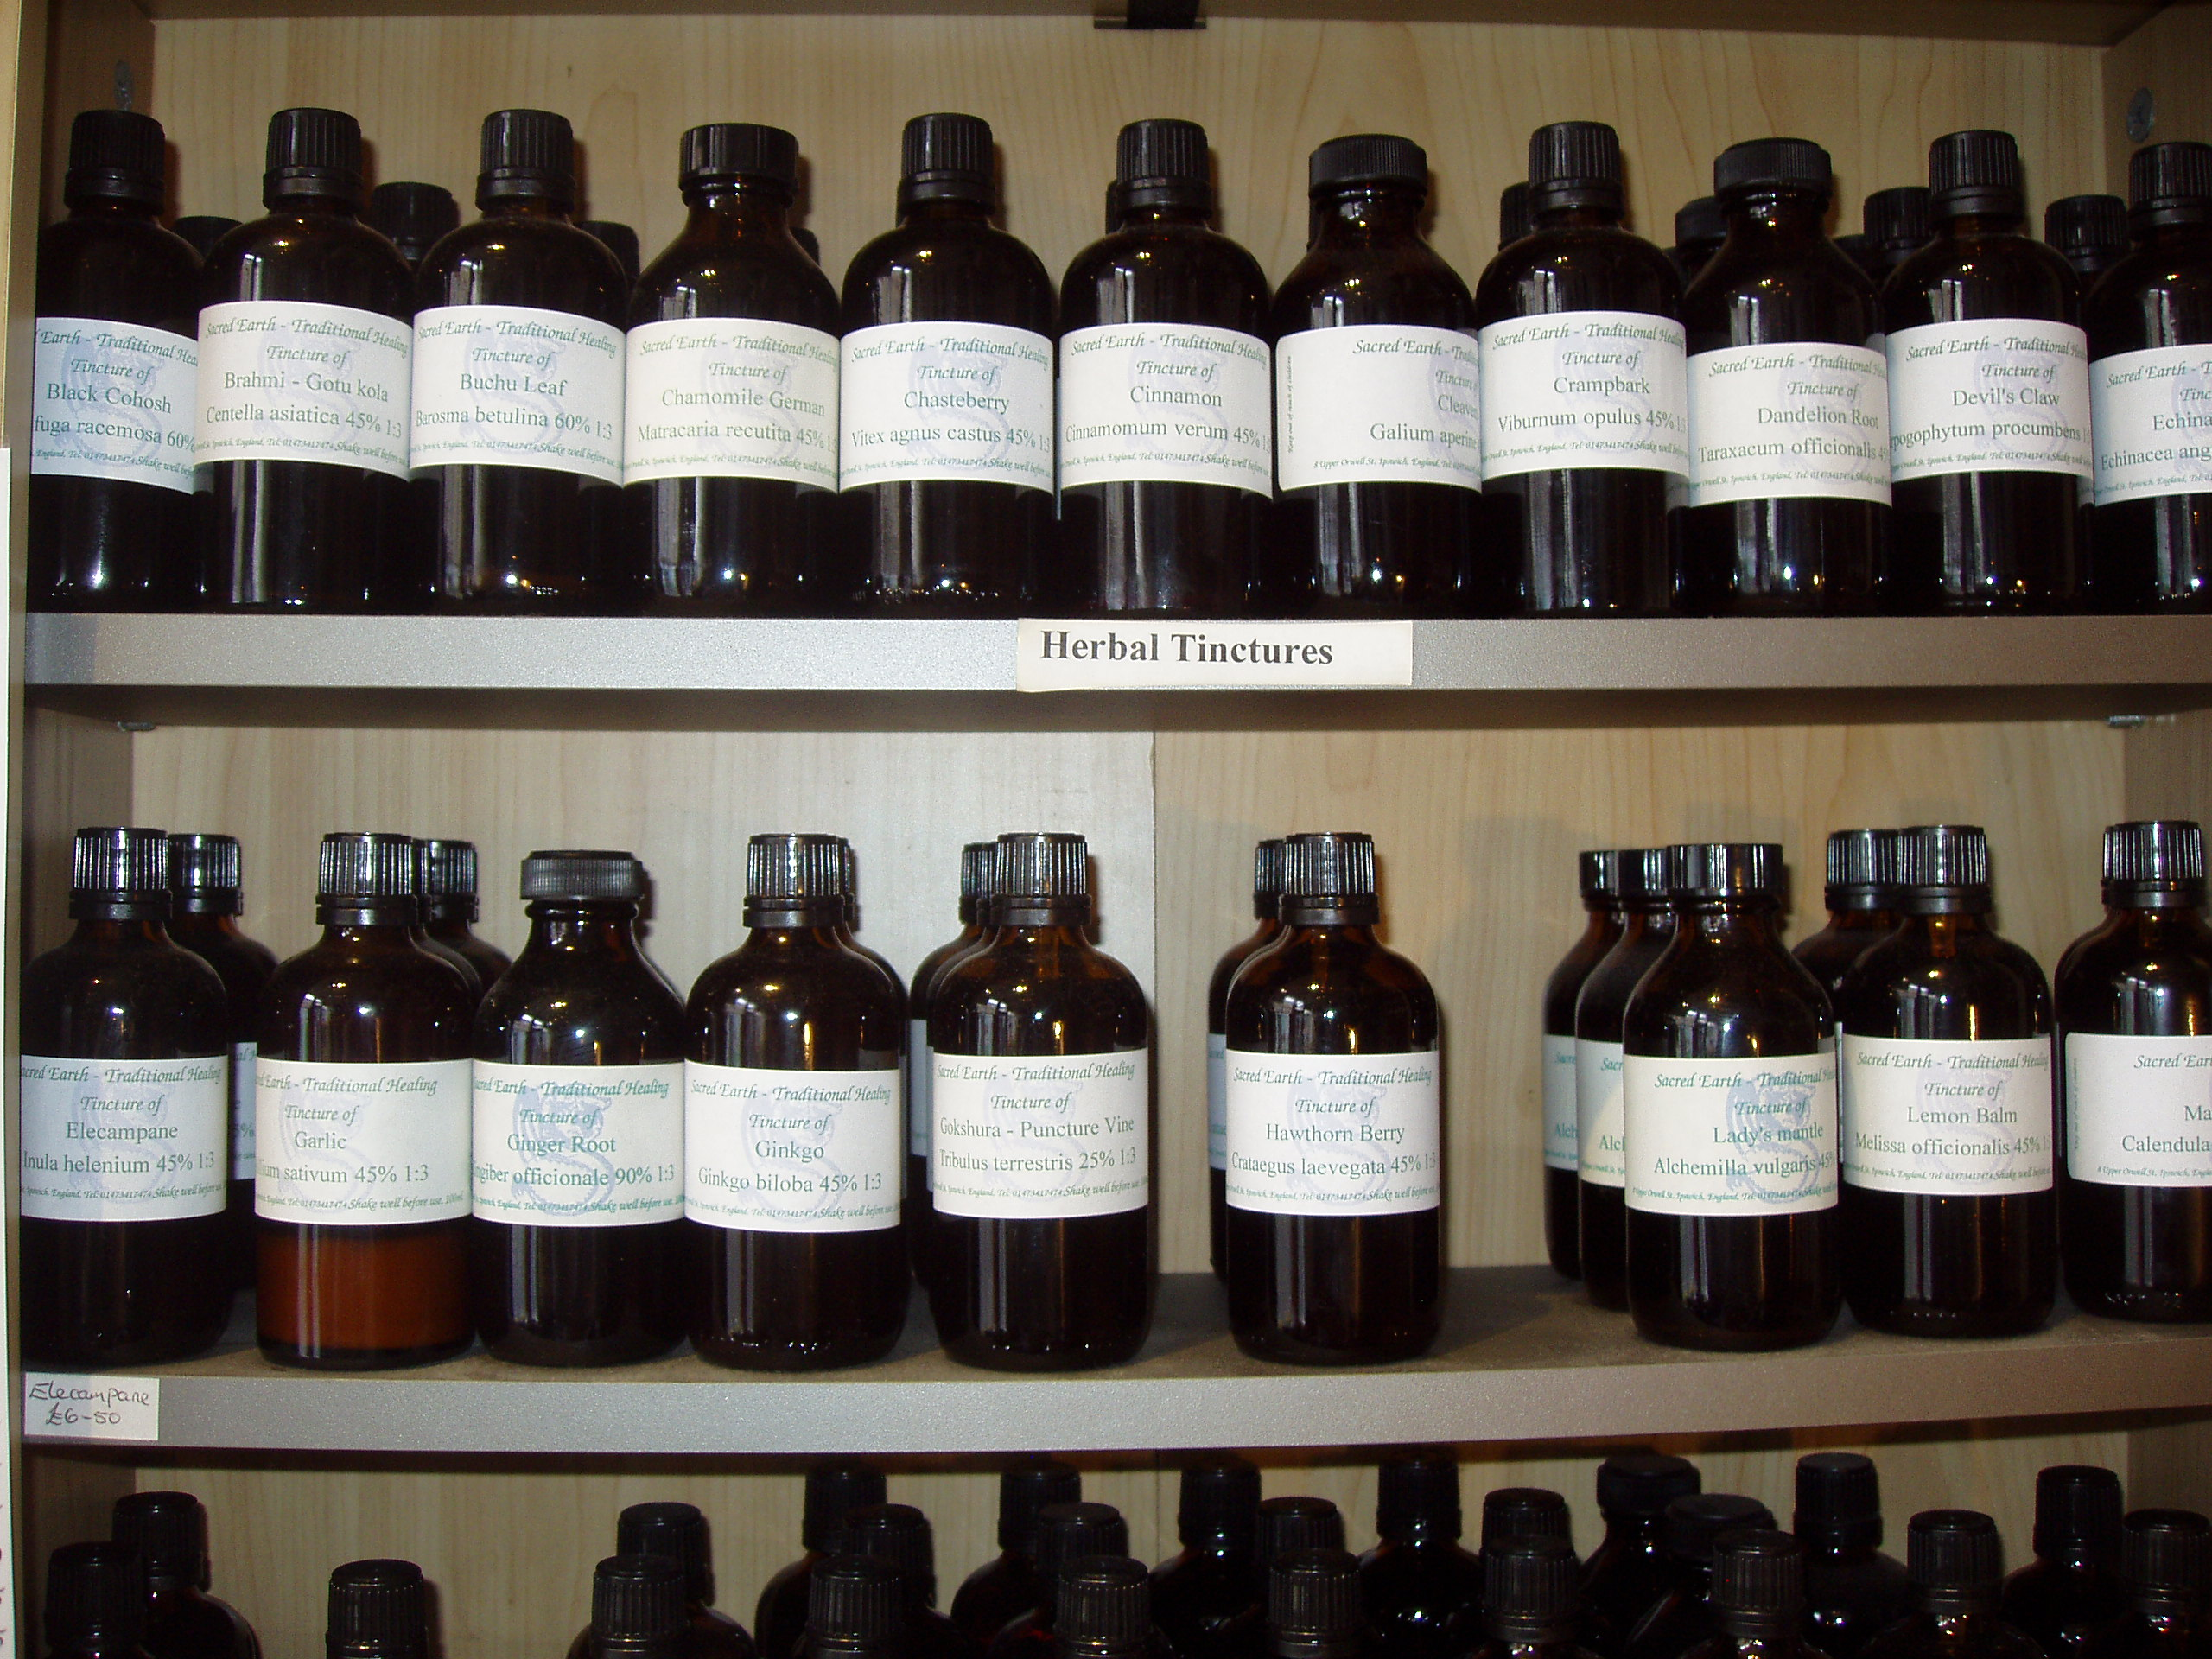 Herbal Tinctures - Saw Palmetto berry